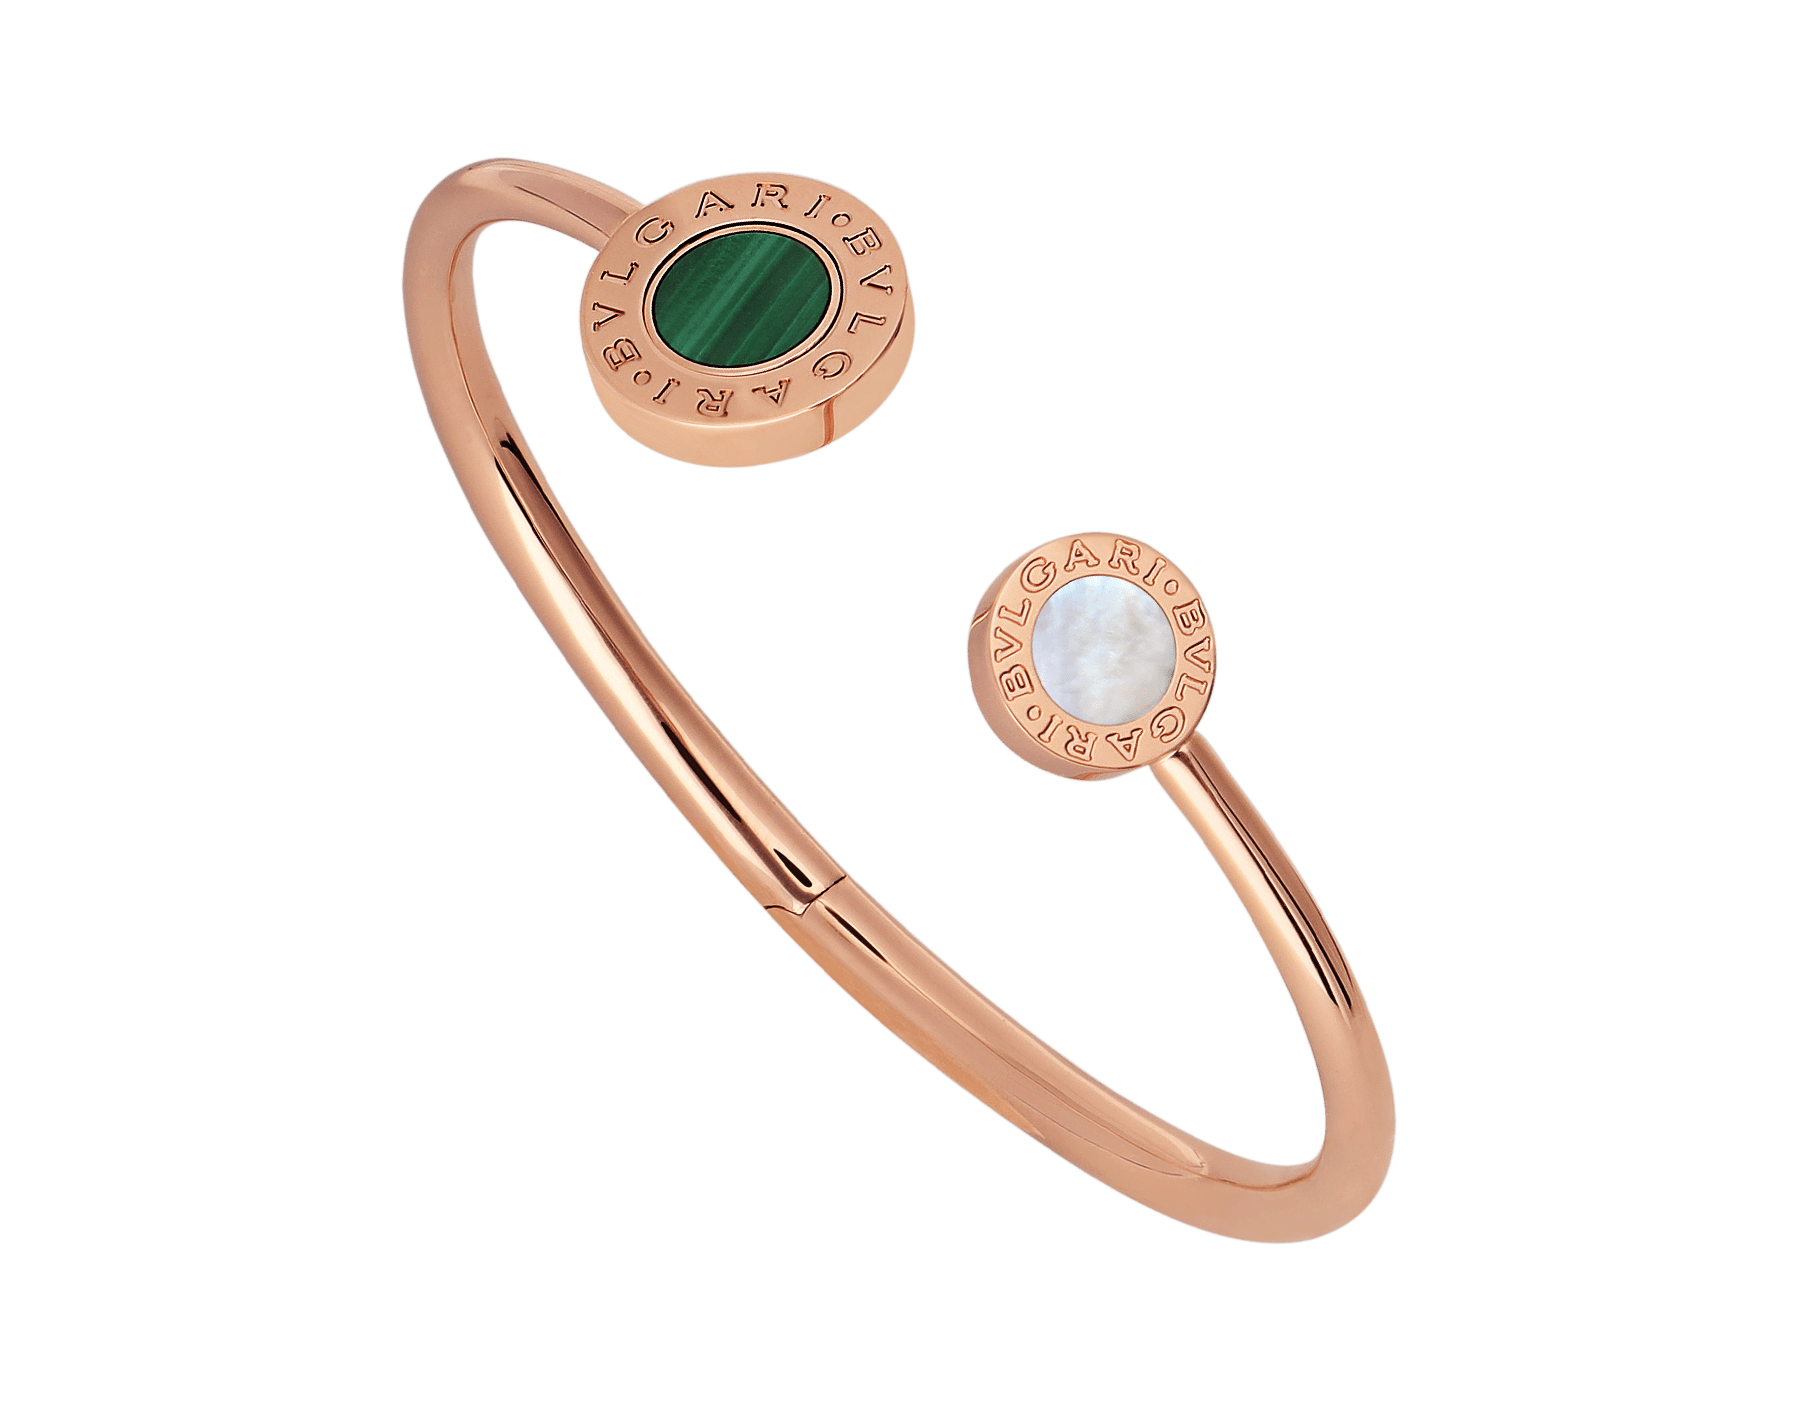 BVLGARI BVLGARI 18 kt rose gold flip bracelet set with mother-of-pearl, onyx and malachite elements BR858422 image 1